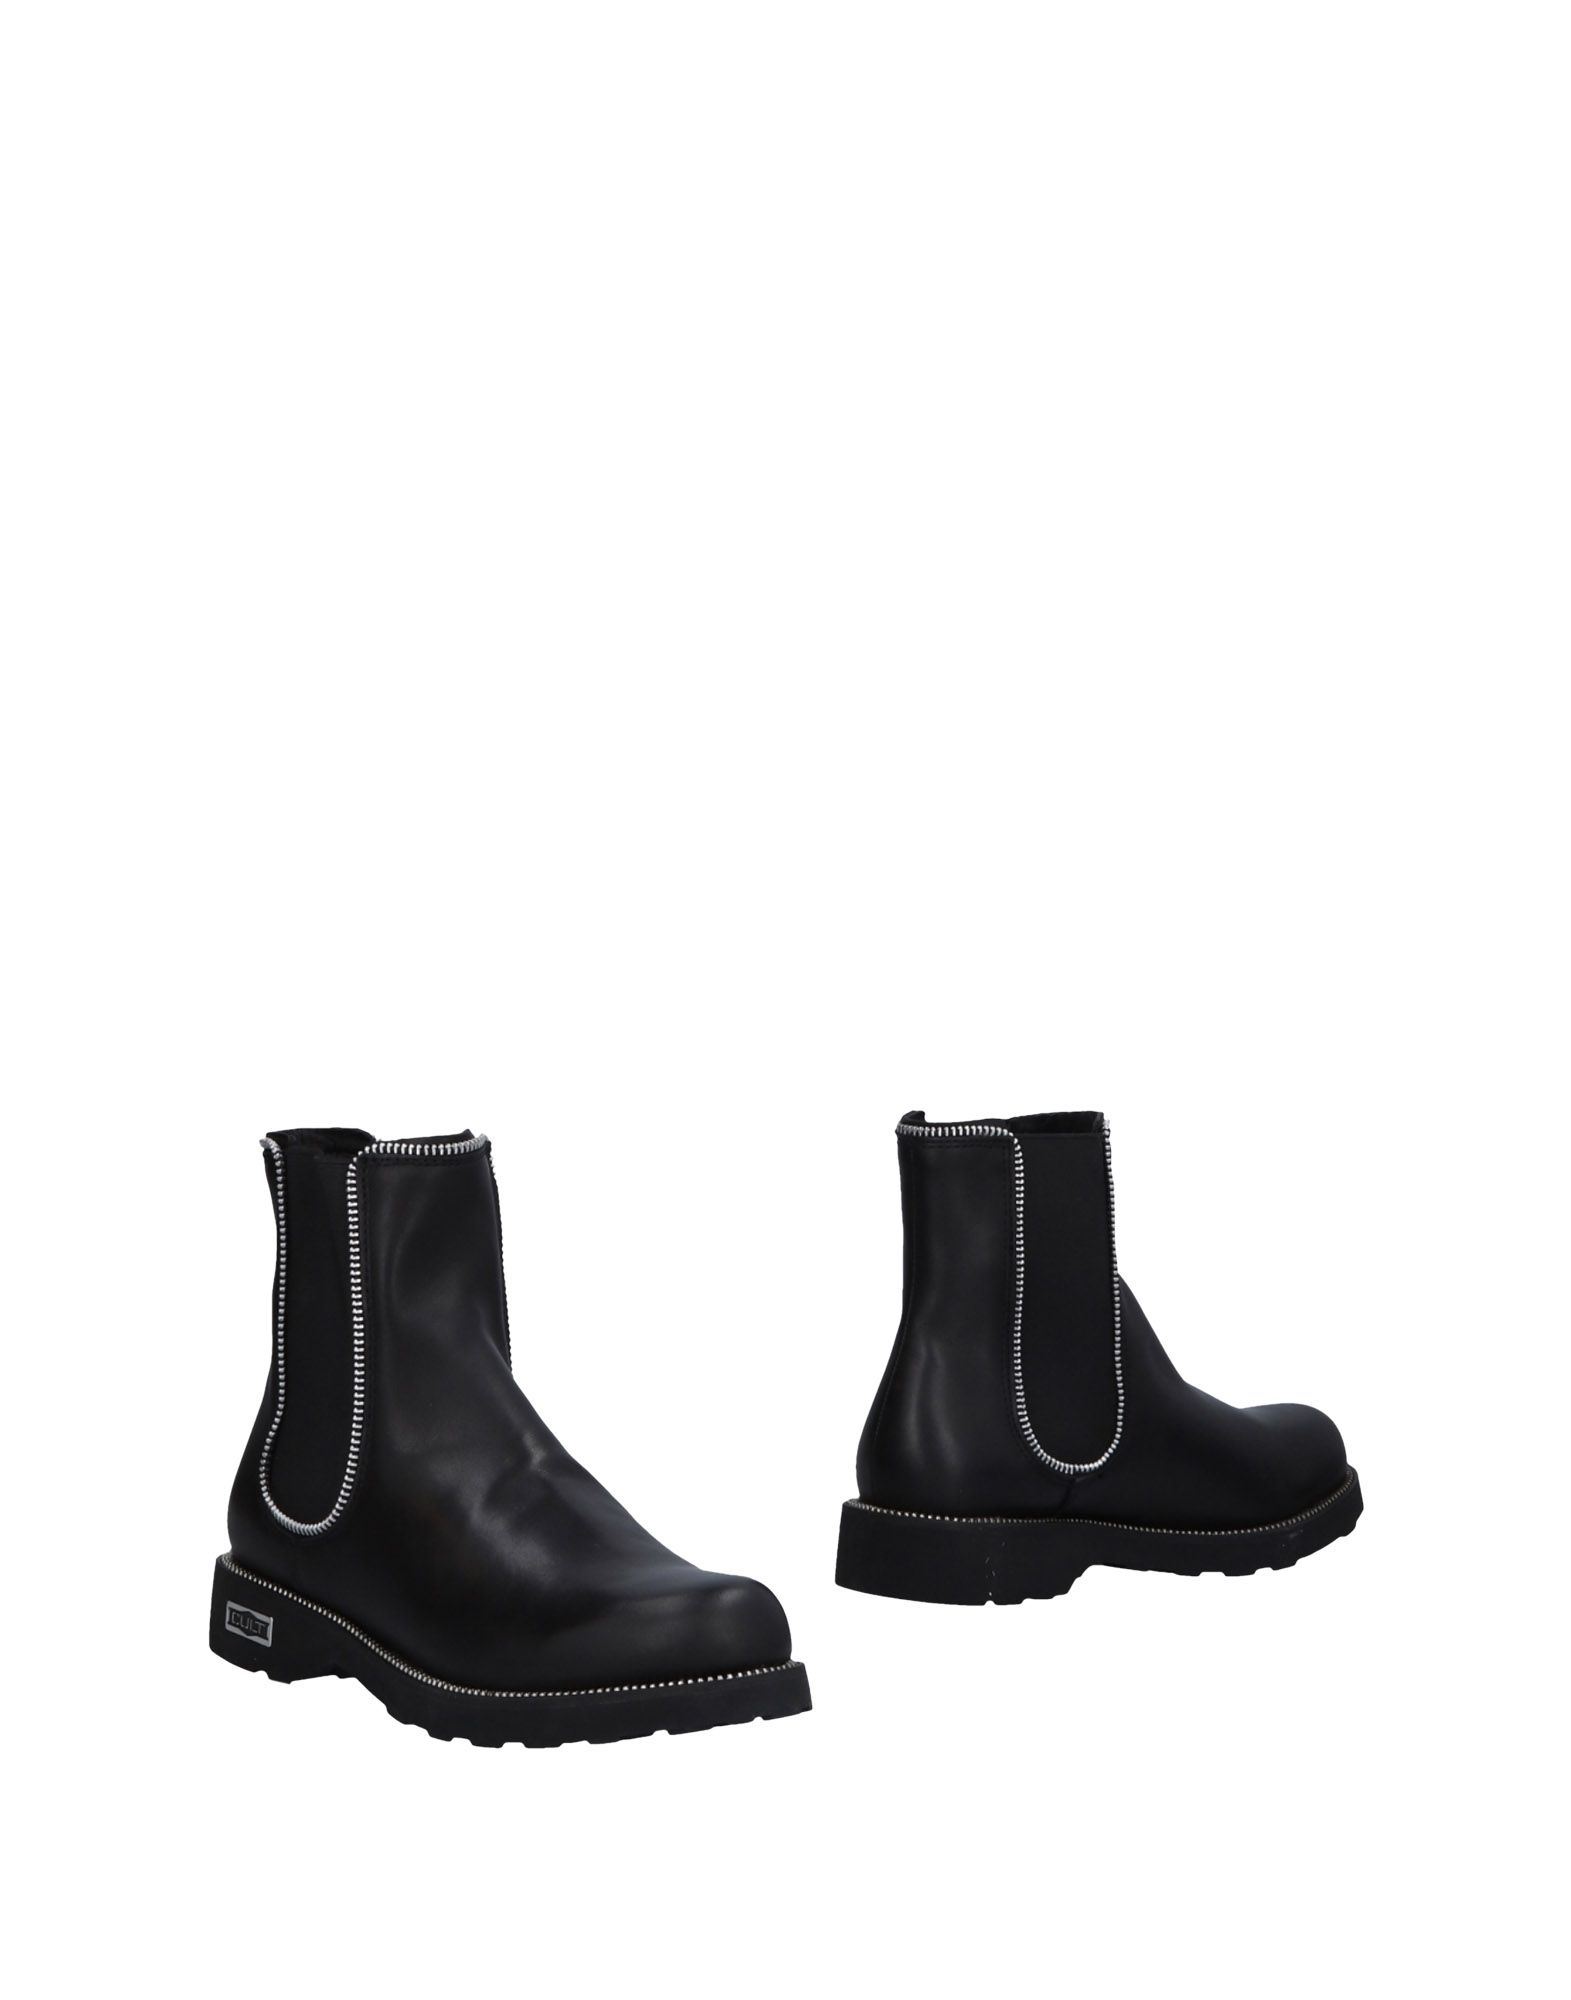 Cult Ankle Boot Boots - Women Cult Ankle Boots Boot online on  Australia - 11473850MH a70cba